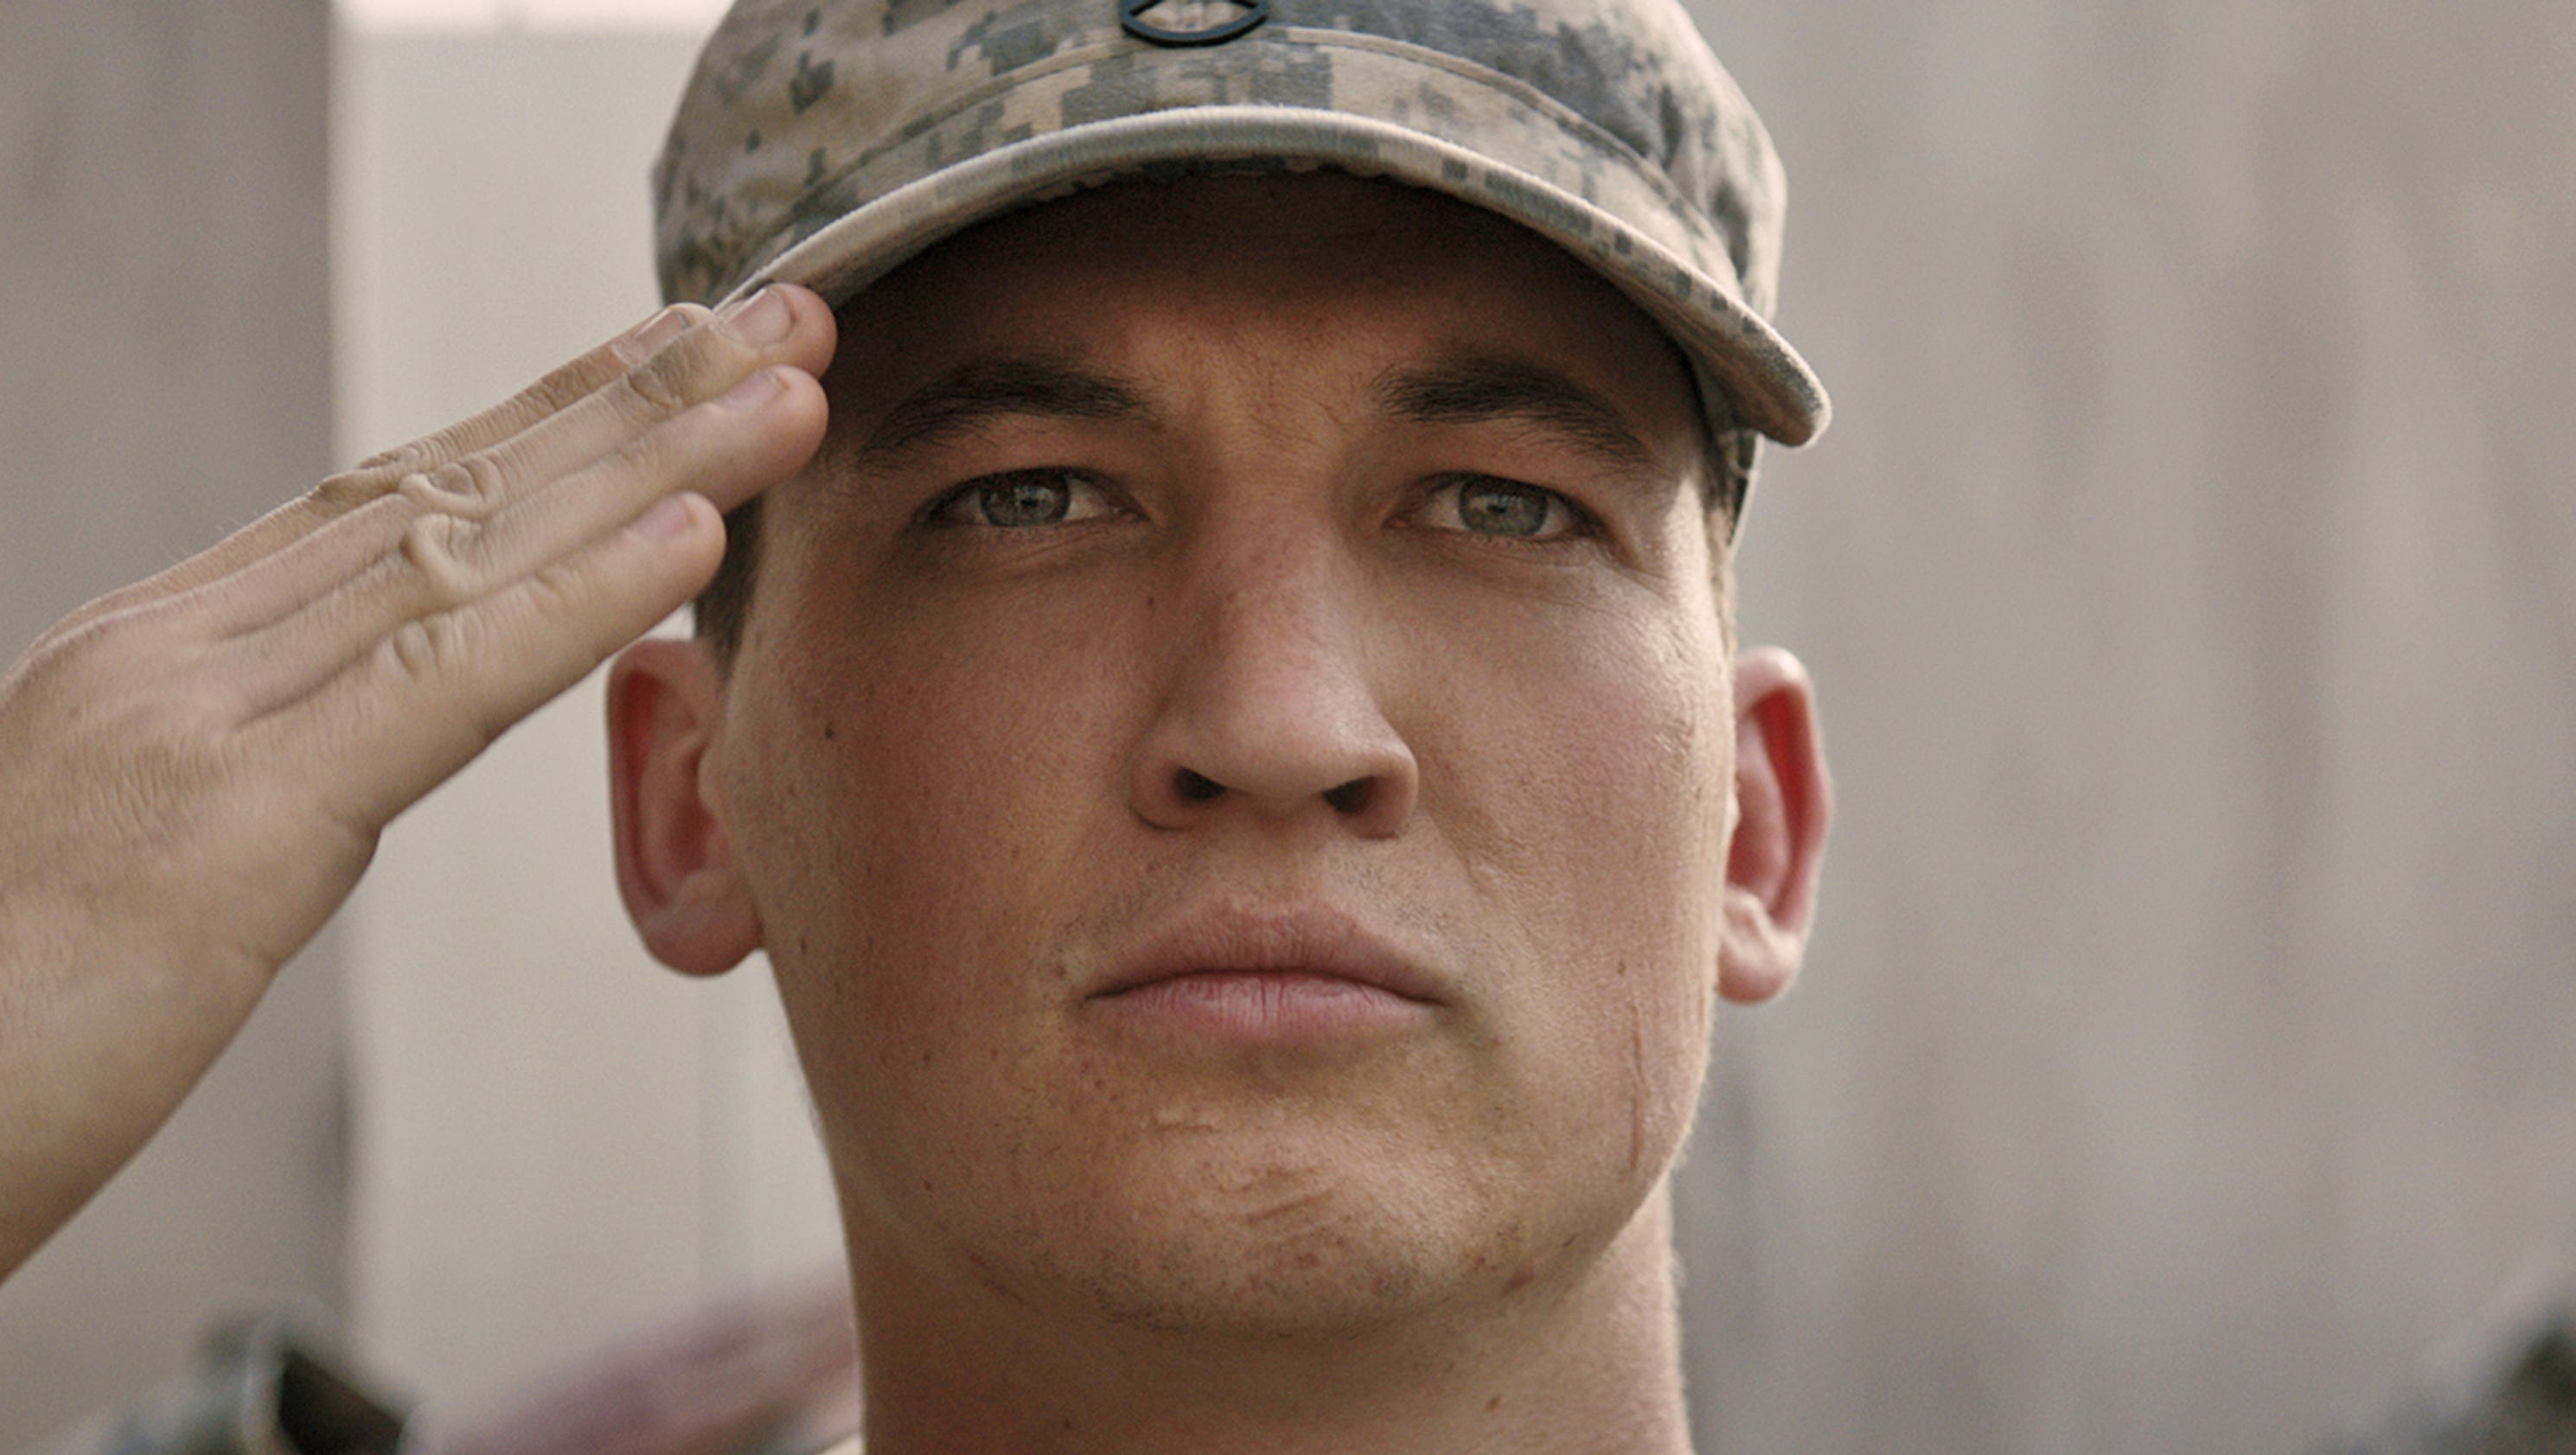 Miles Teller has PTSD in exclusive 'Thank You for Your Service' trailer